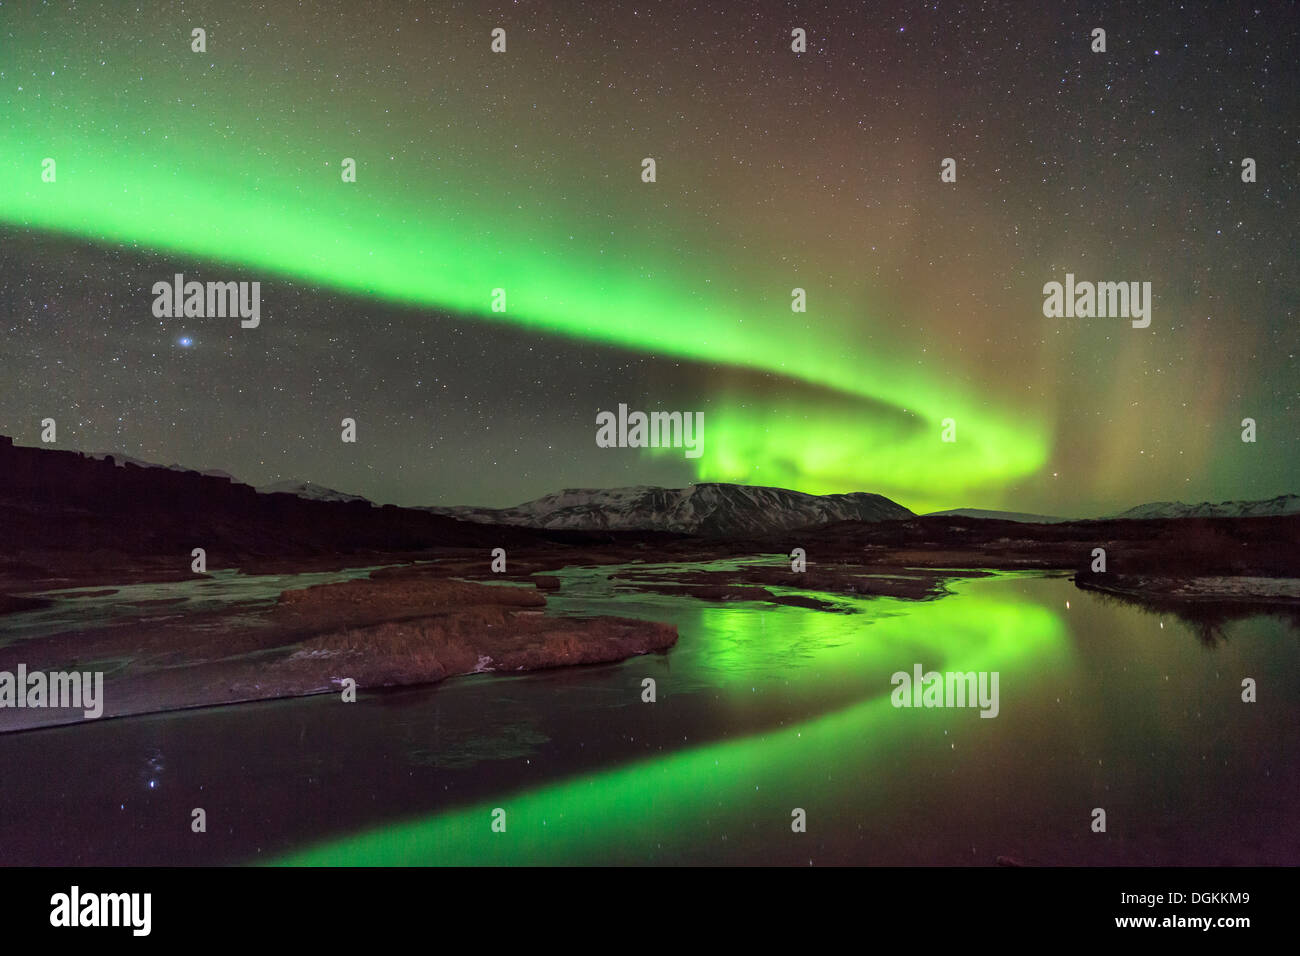 Aurora borealis over Lake Thingvallavatn in Thingvellir National Park in Iceland. - Stock Image